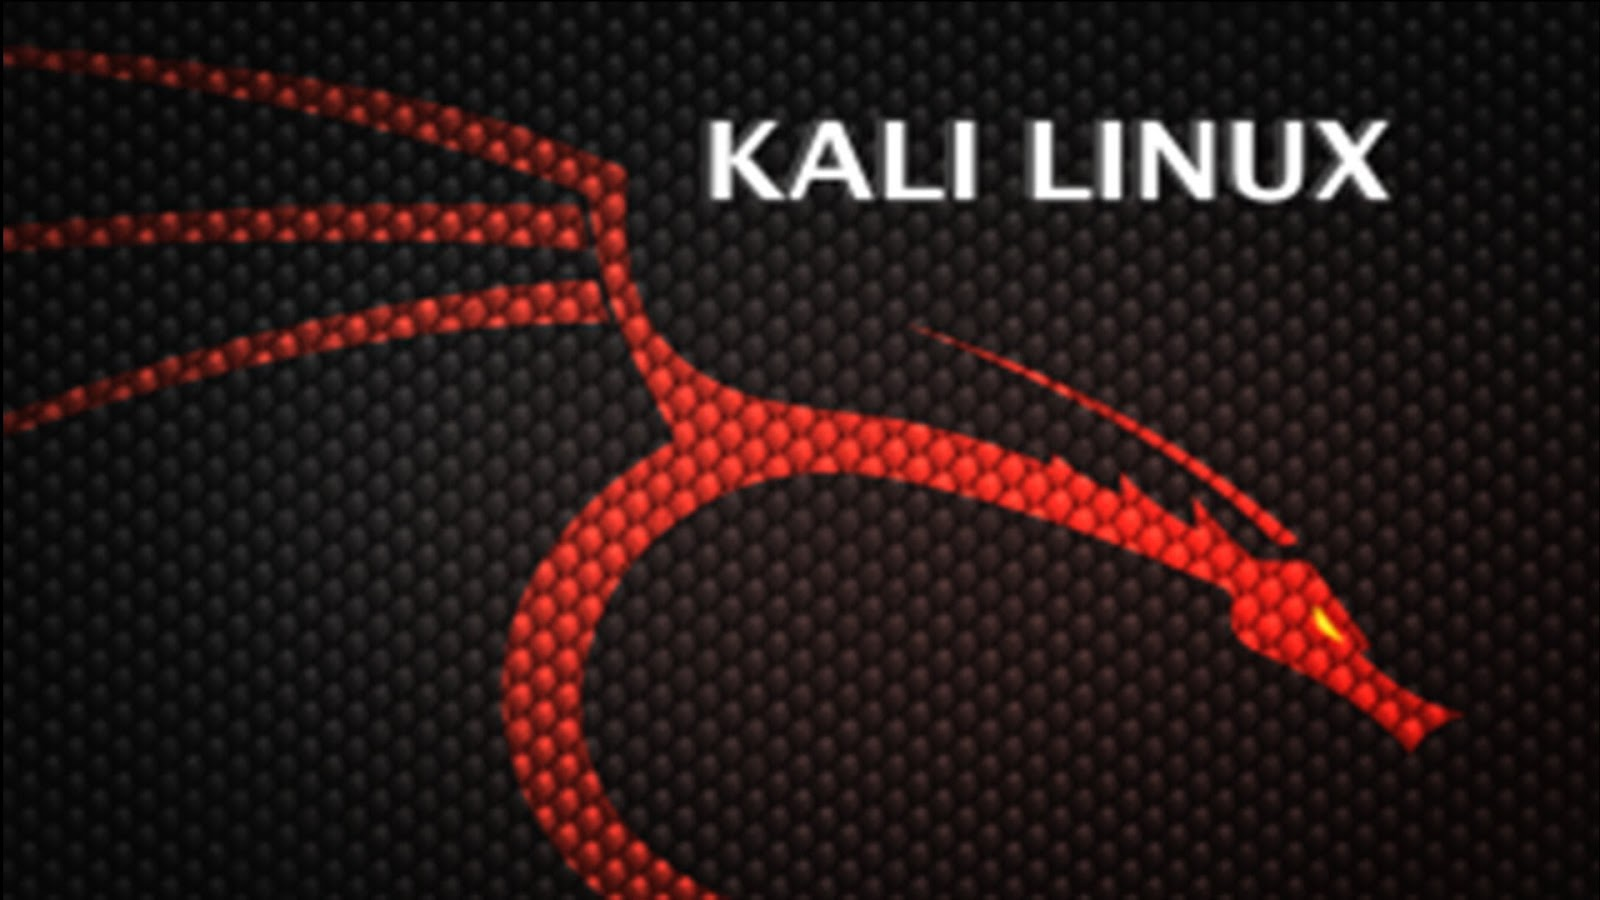 Instil developers how to install xdm downloader on kali linux xdm is a cool downloader to download any thing present on the web you can download youtube videos directly through xdm ccuart Images